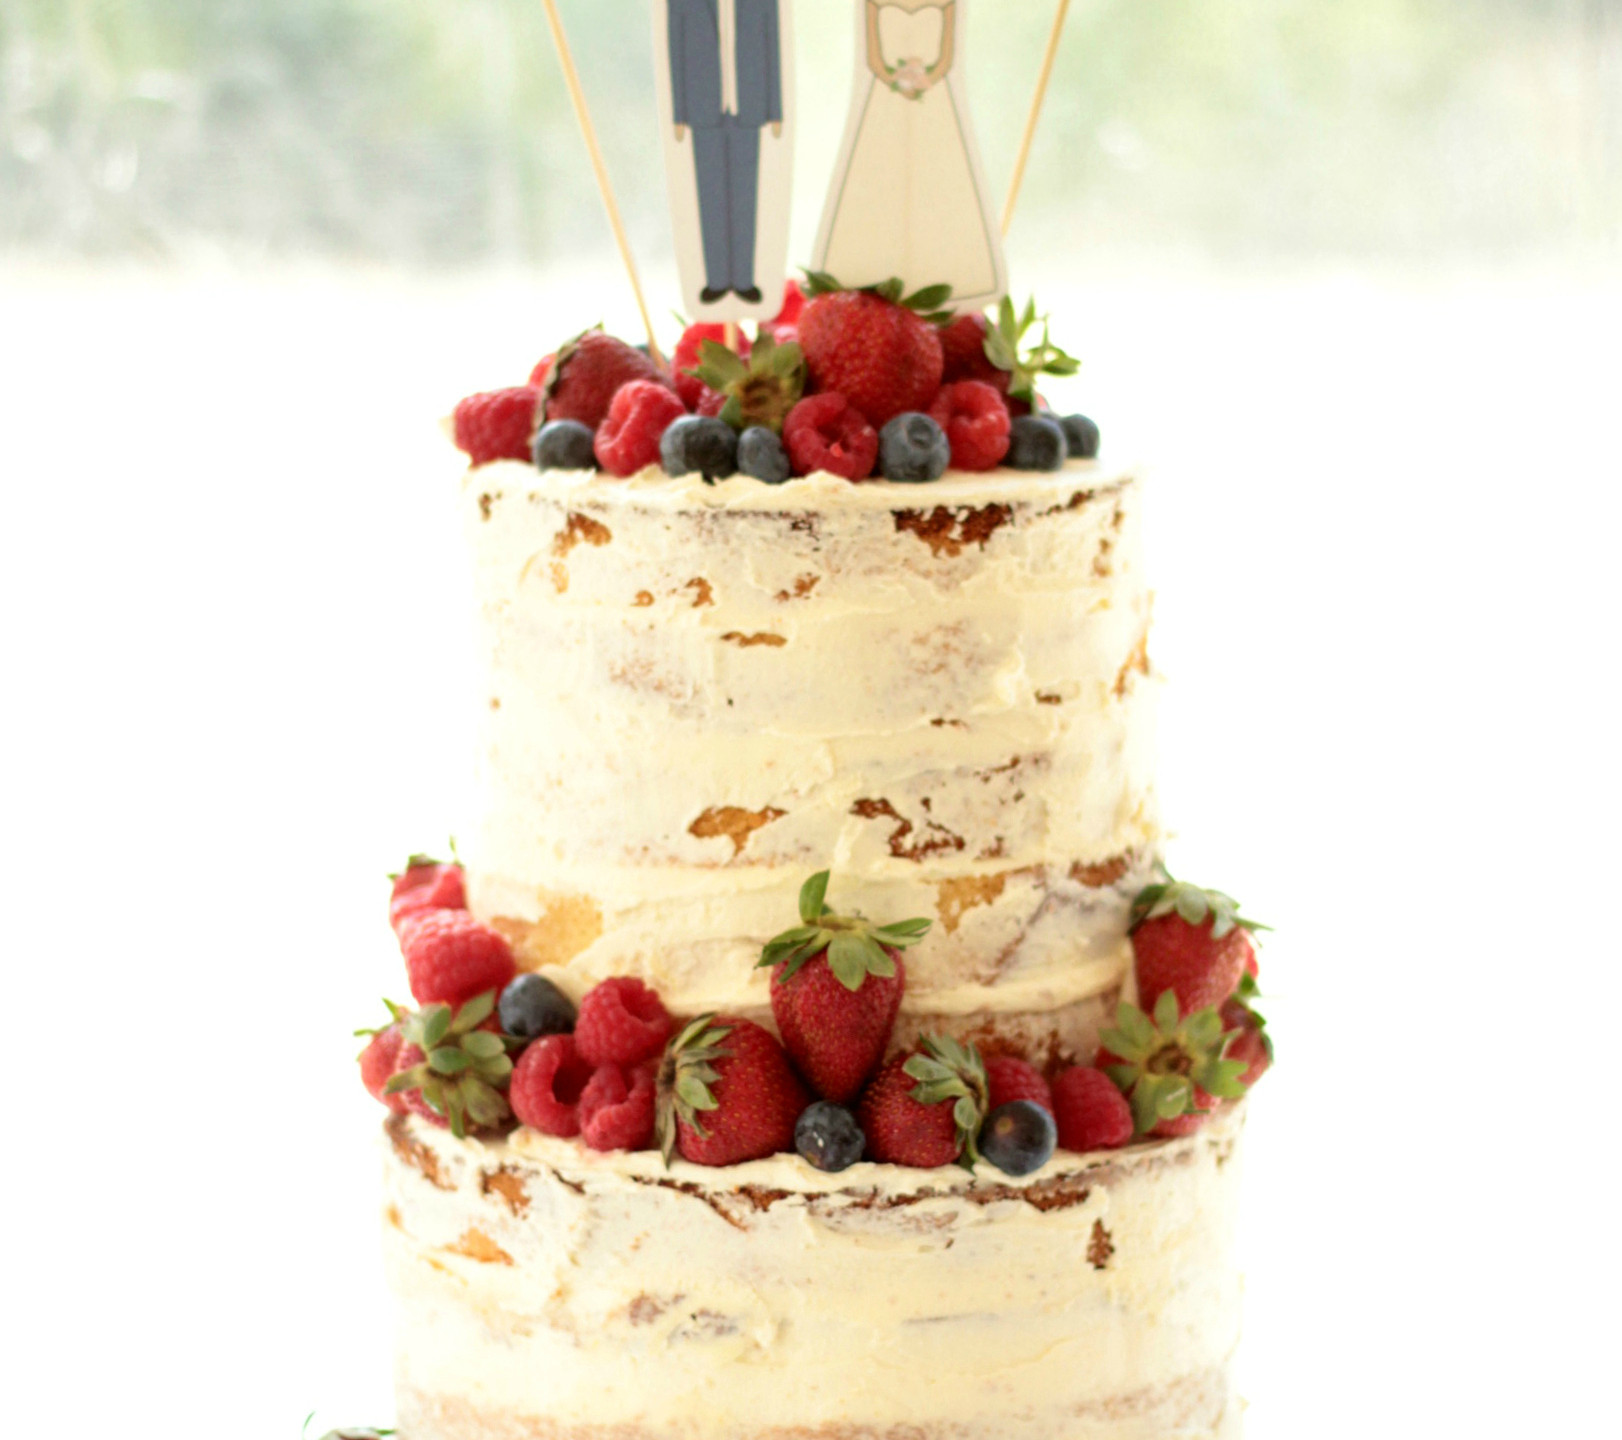 Rustic buttercream with fresh seasonal berries for a casual wedding style.